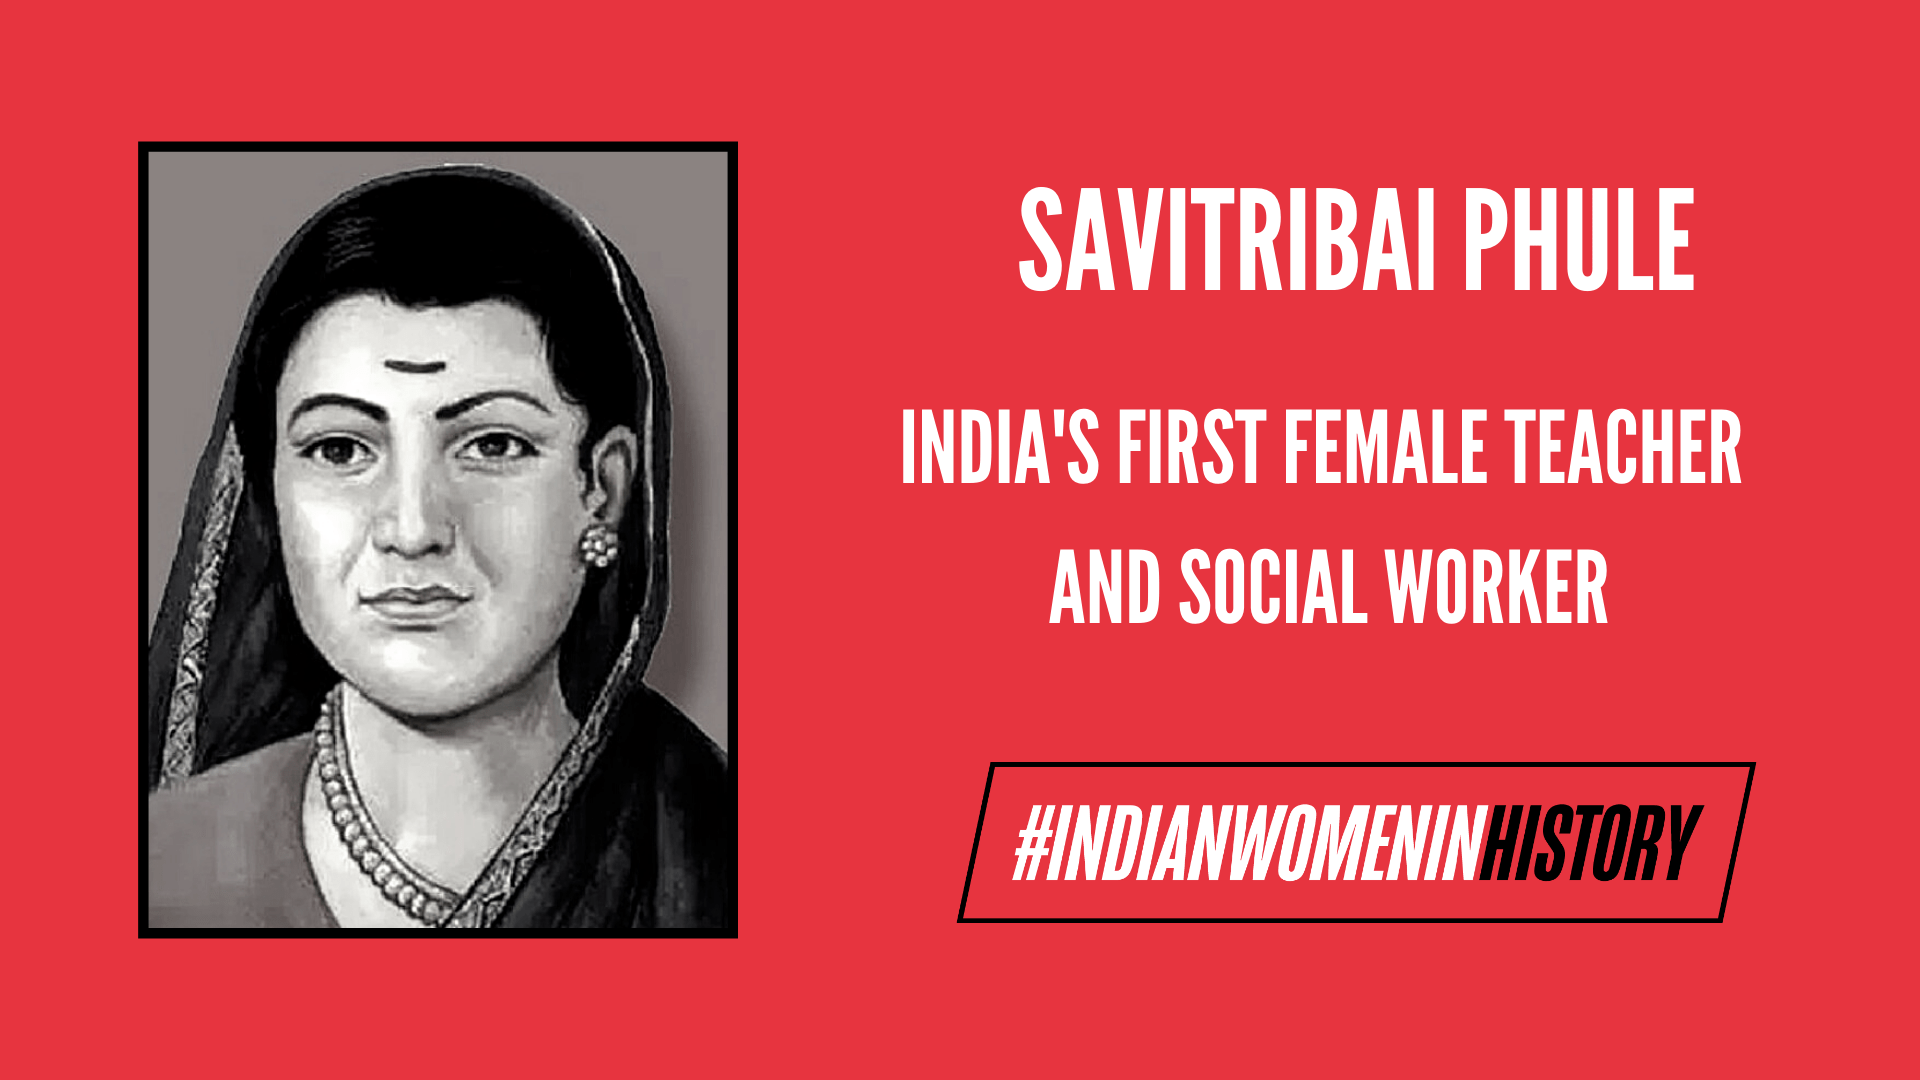 The Life And Times Of Dnyanjyoti Krantijyoti Savitribai Phule | #IndianWomenInHistory